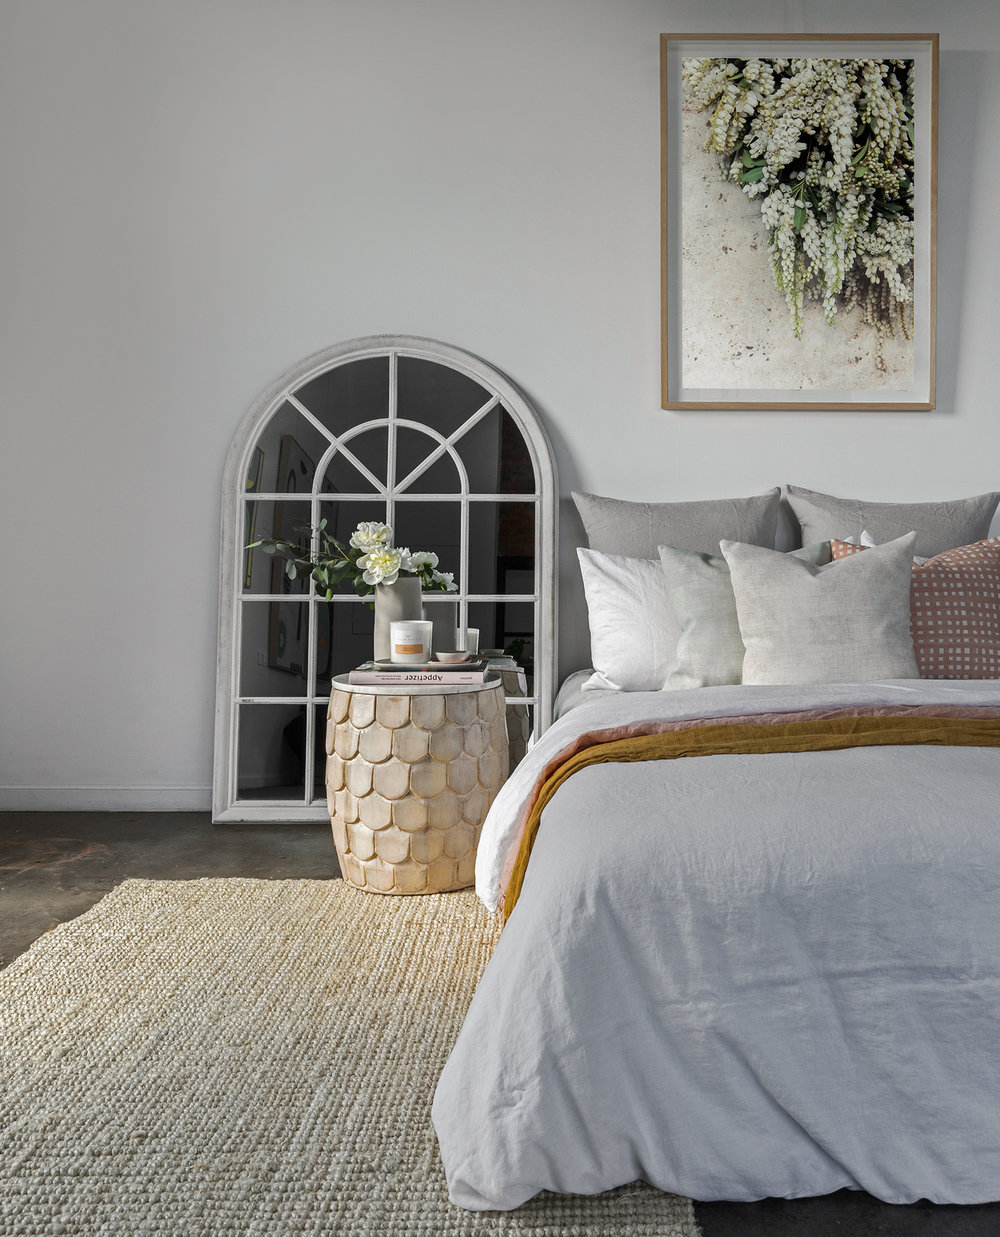 coastal bedroom on mornington peninsula interior design by dunne interiors.jpg